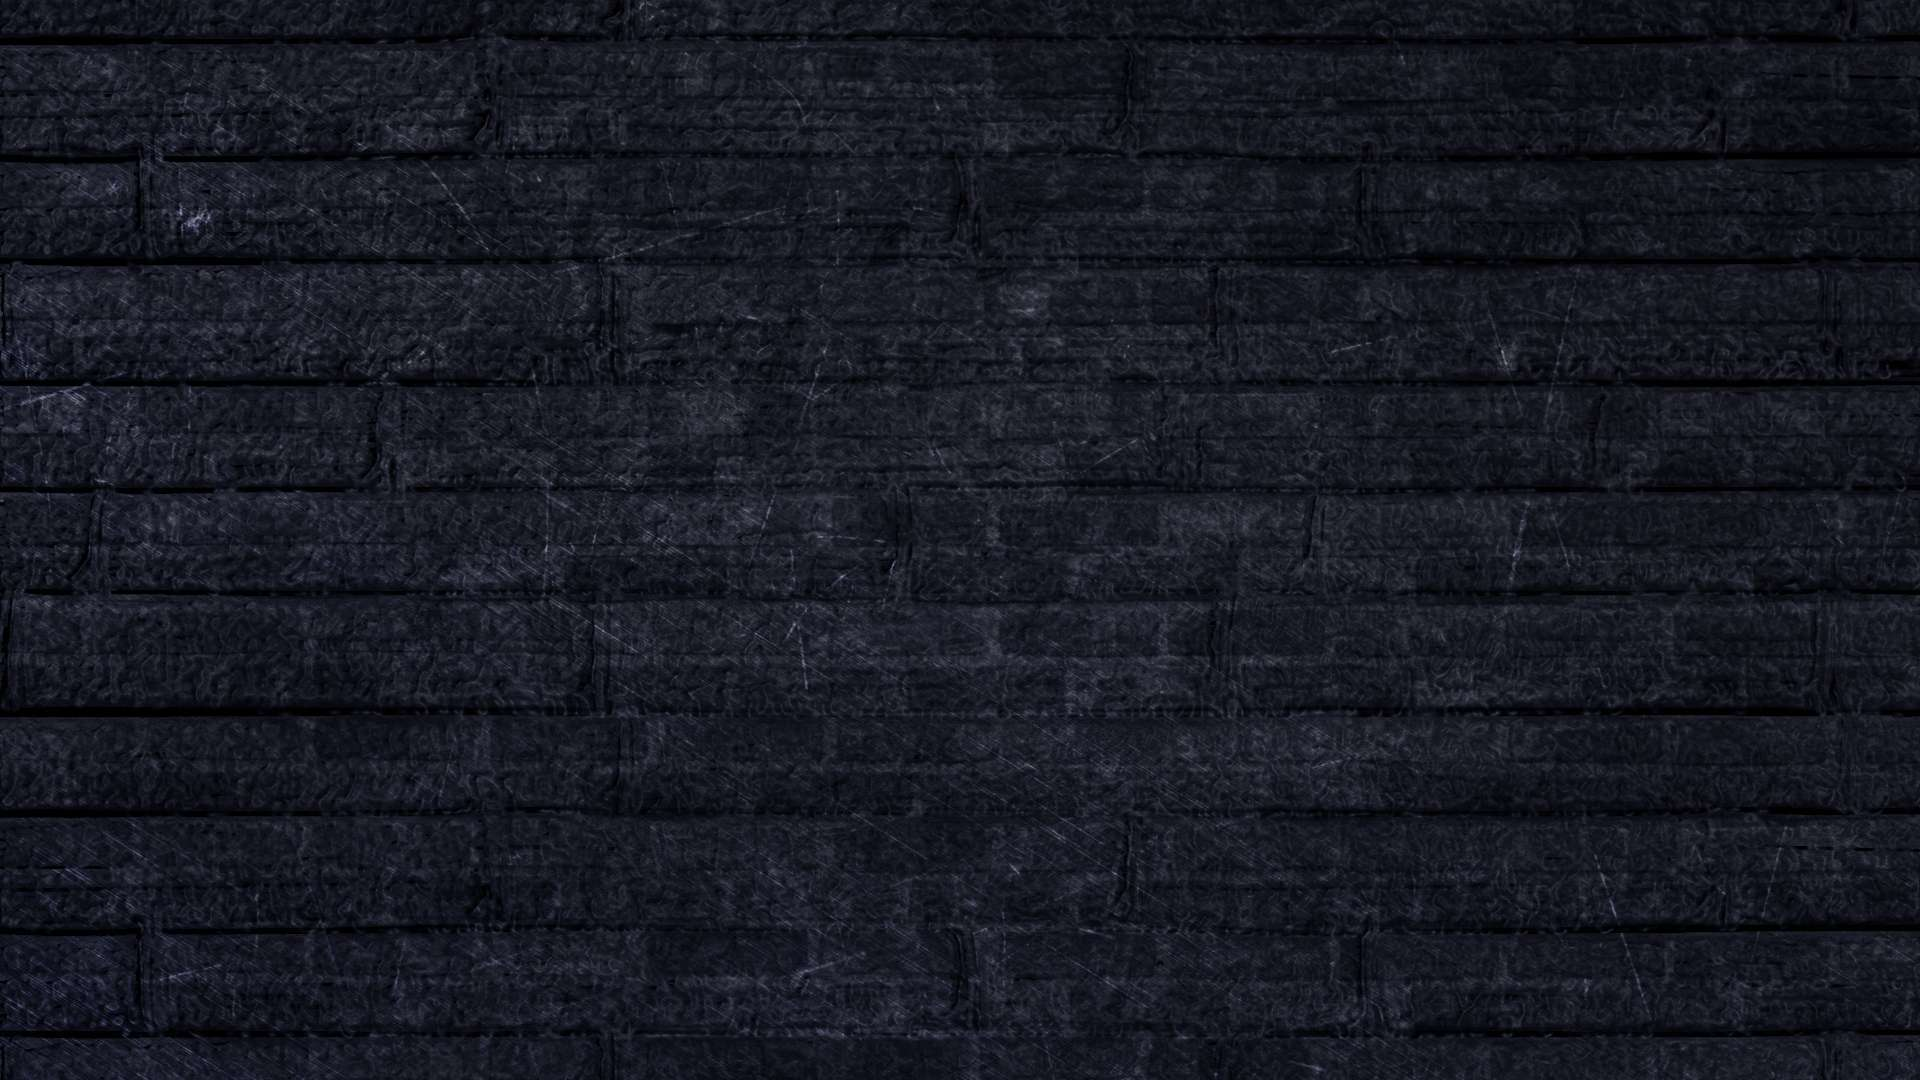 Black Background Hd Wallpapers 1920x1080